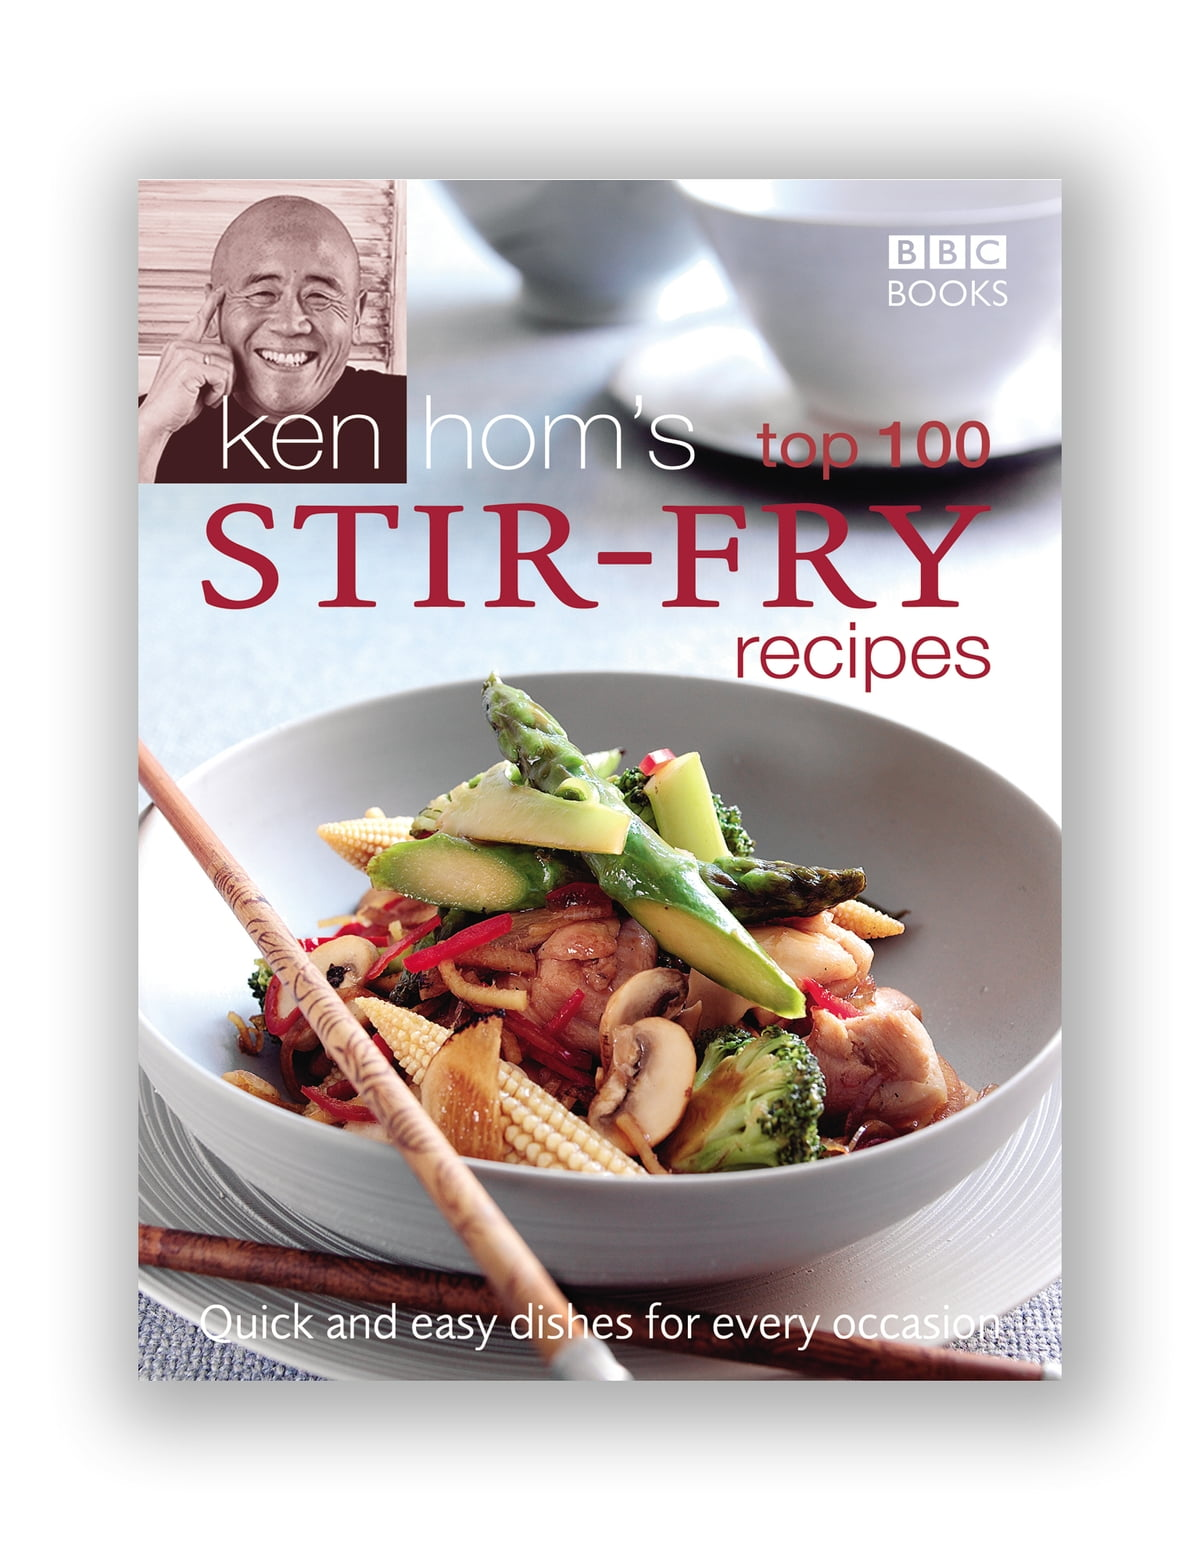 Ken Hom's Top 100 Stir Fry Recipes eBook by Ken Hom - 9781409074793 |  Rakuten Kobo